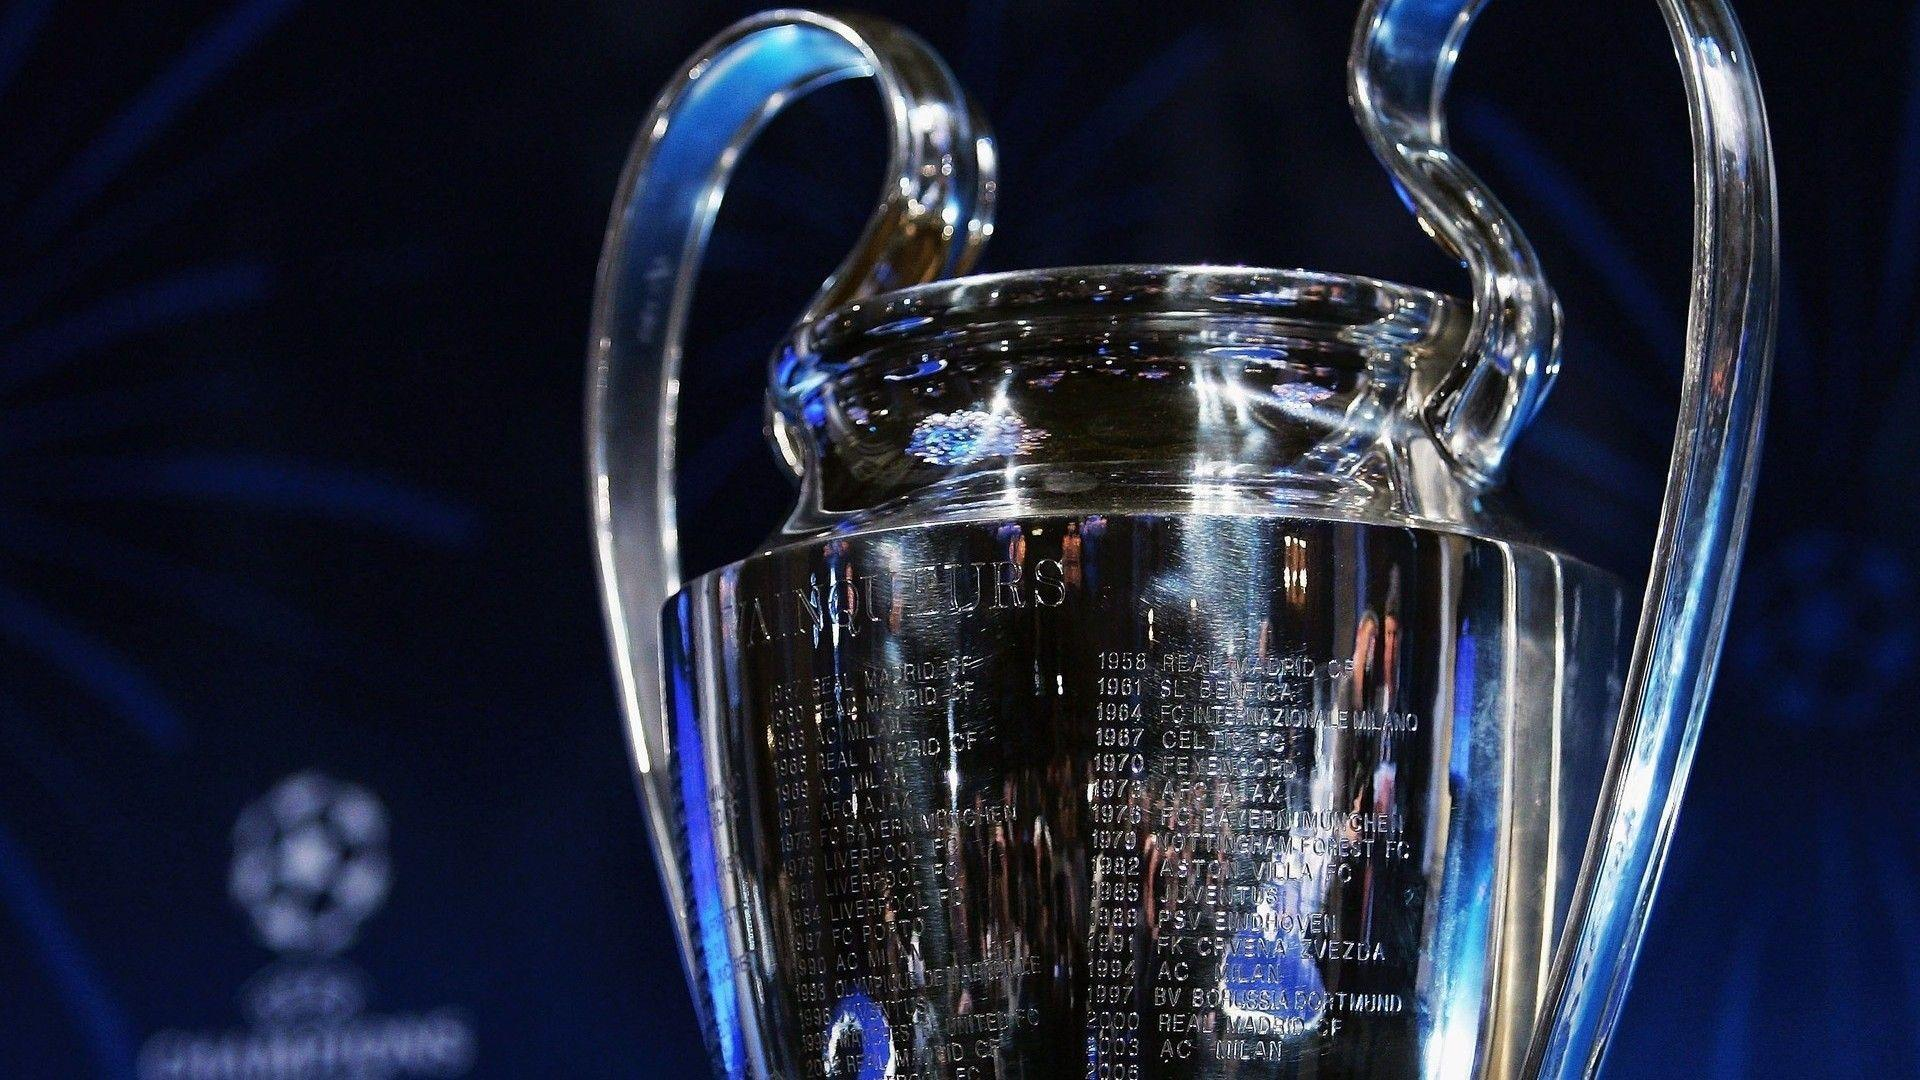 Download Uefa Champions League Logo Wallpaper